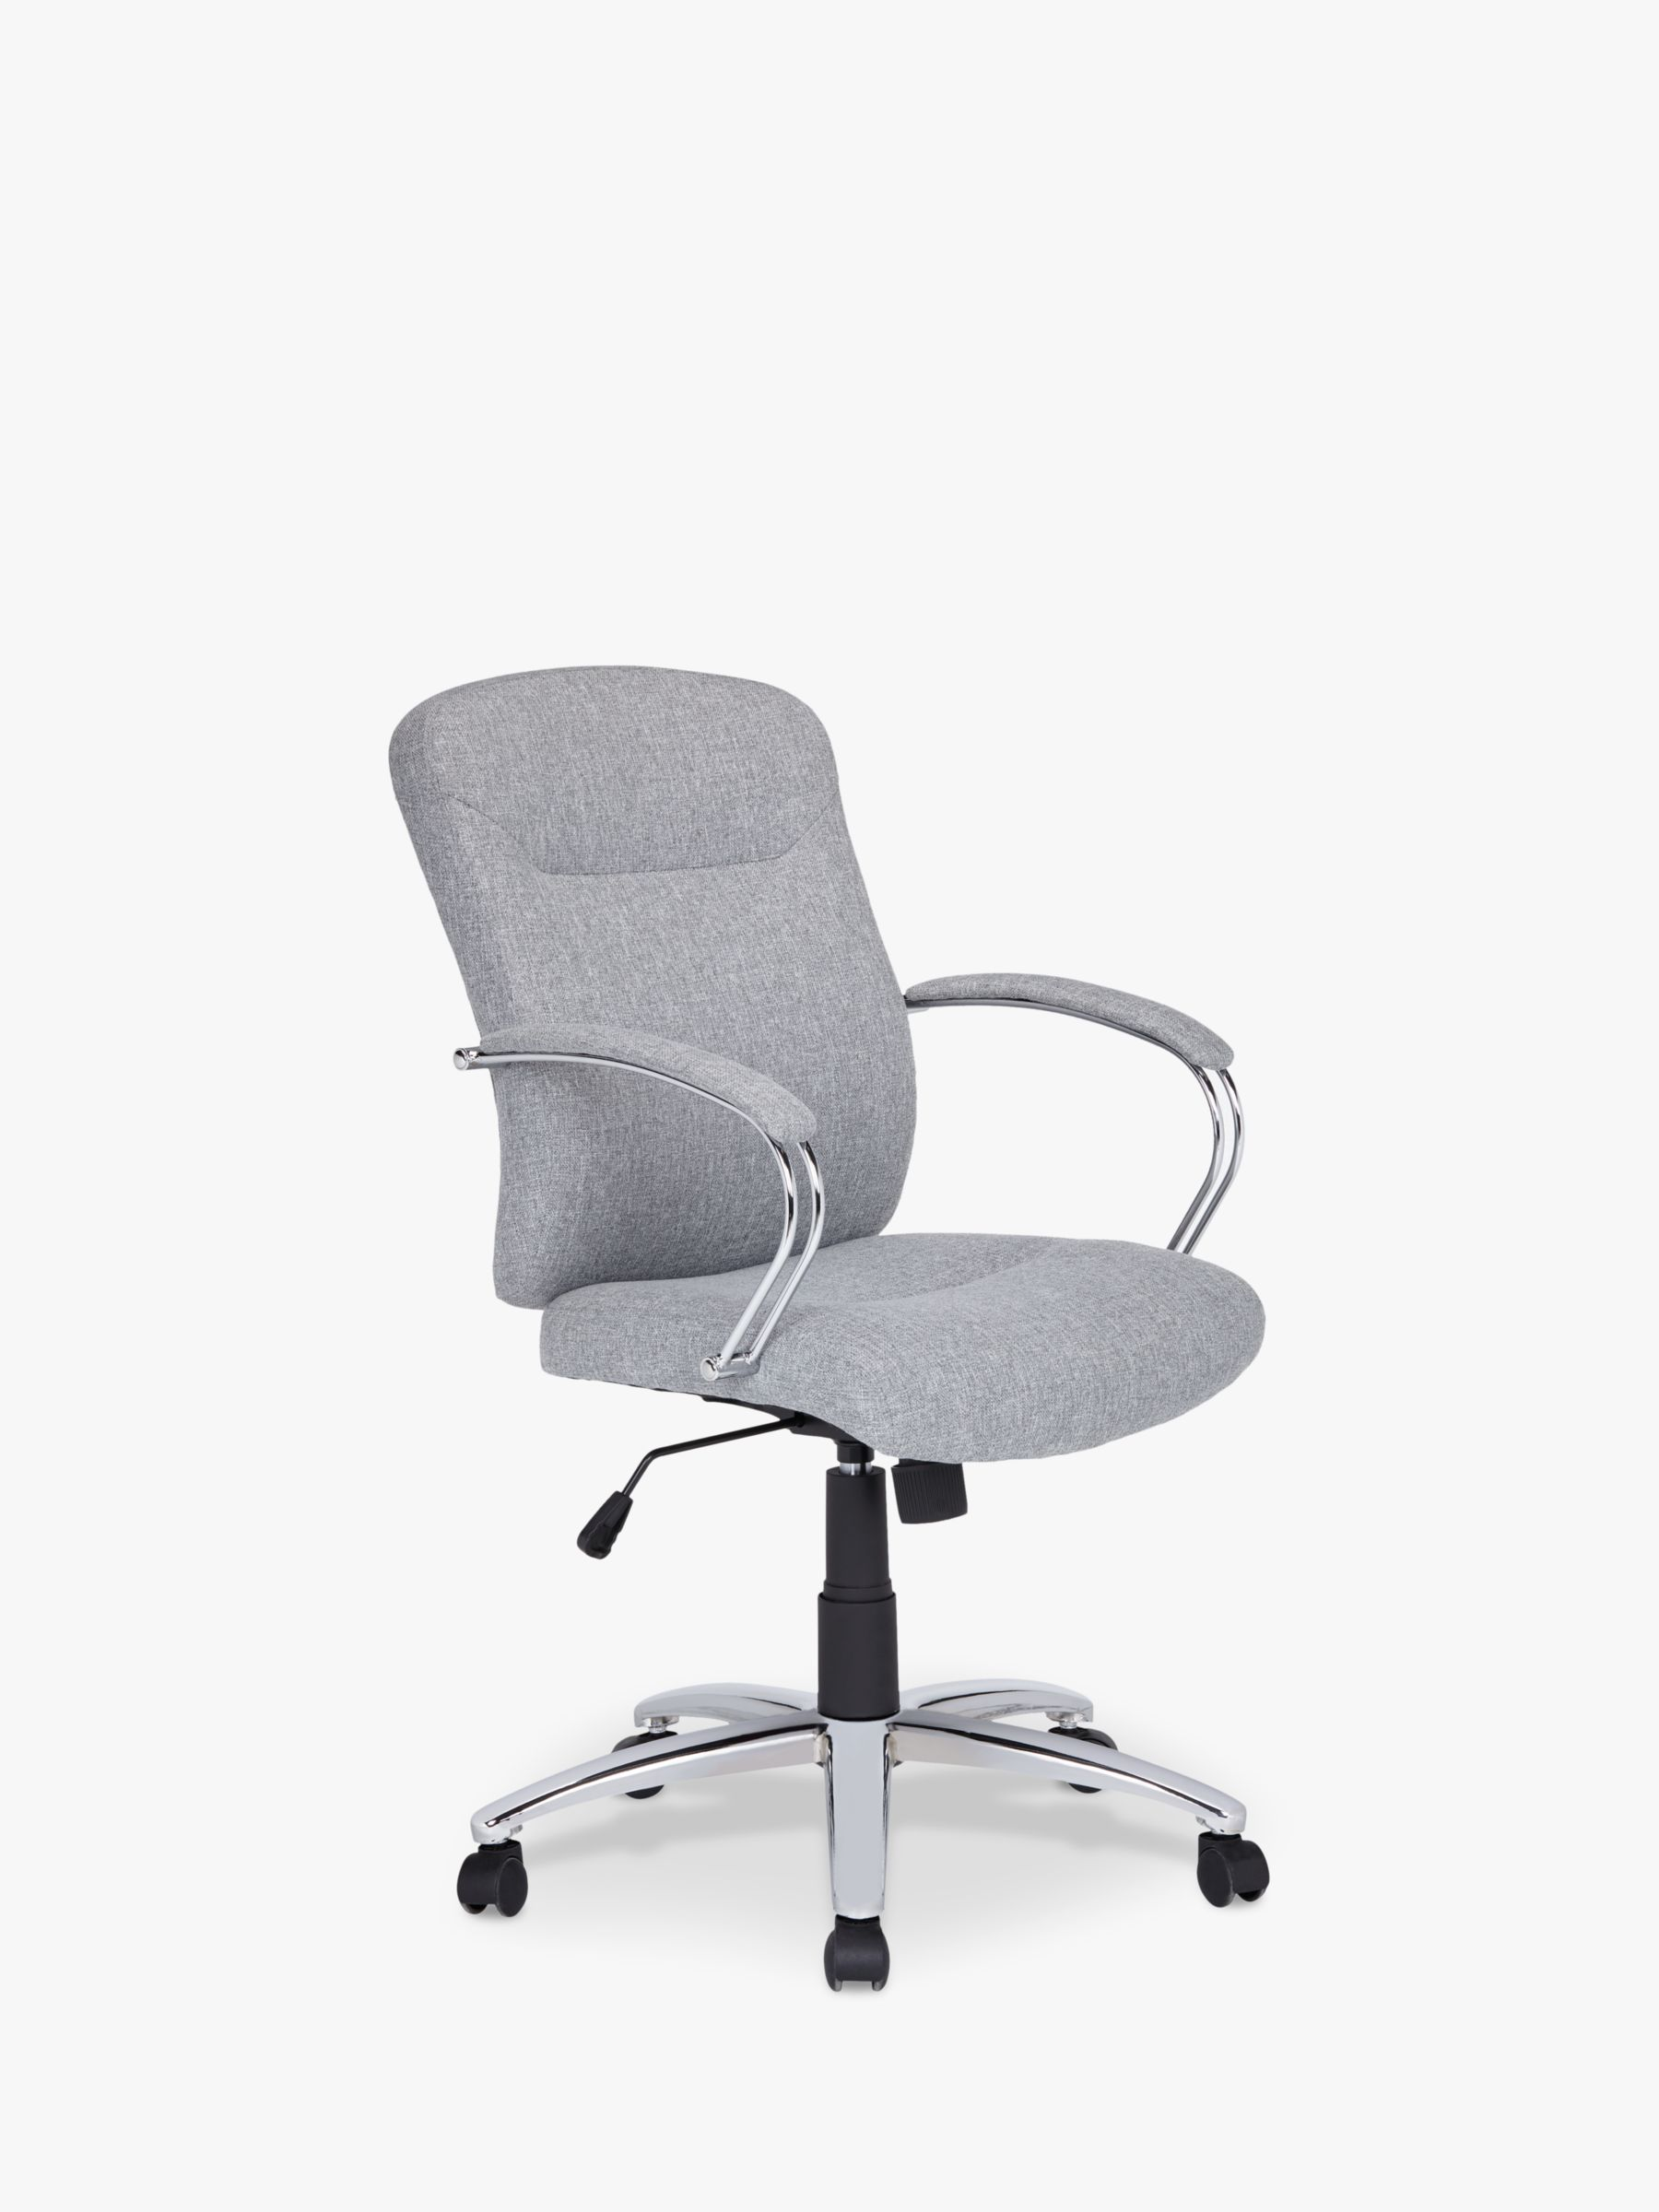 ANYDAY John Lewis & Partners Warner Fabric Office Chair, Grey